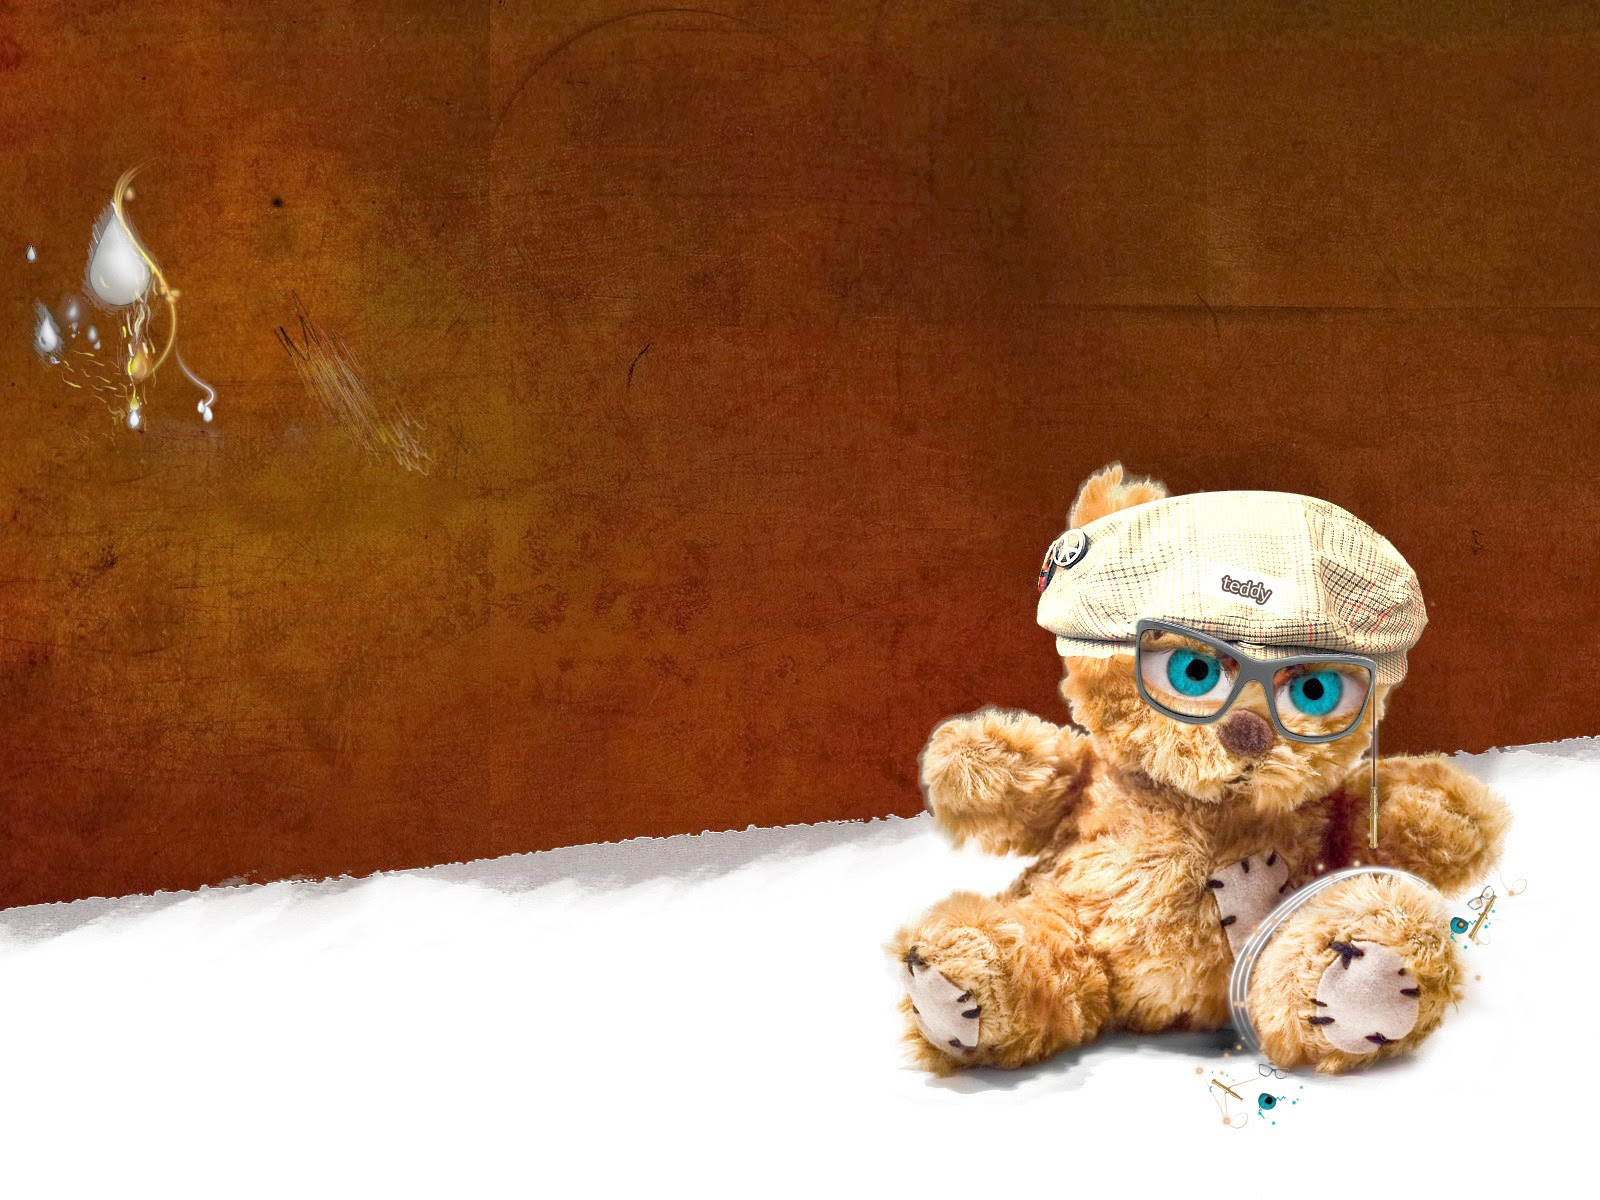 Teddy-bear-pictures-HD-desktop-for-kids.jpg